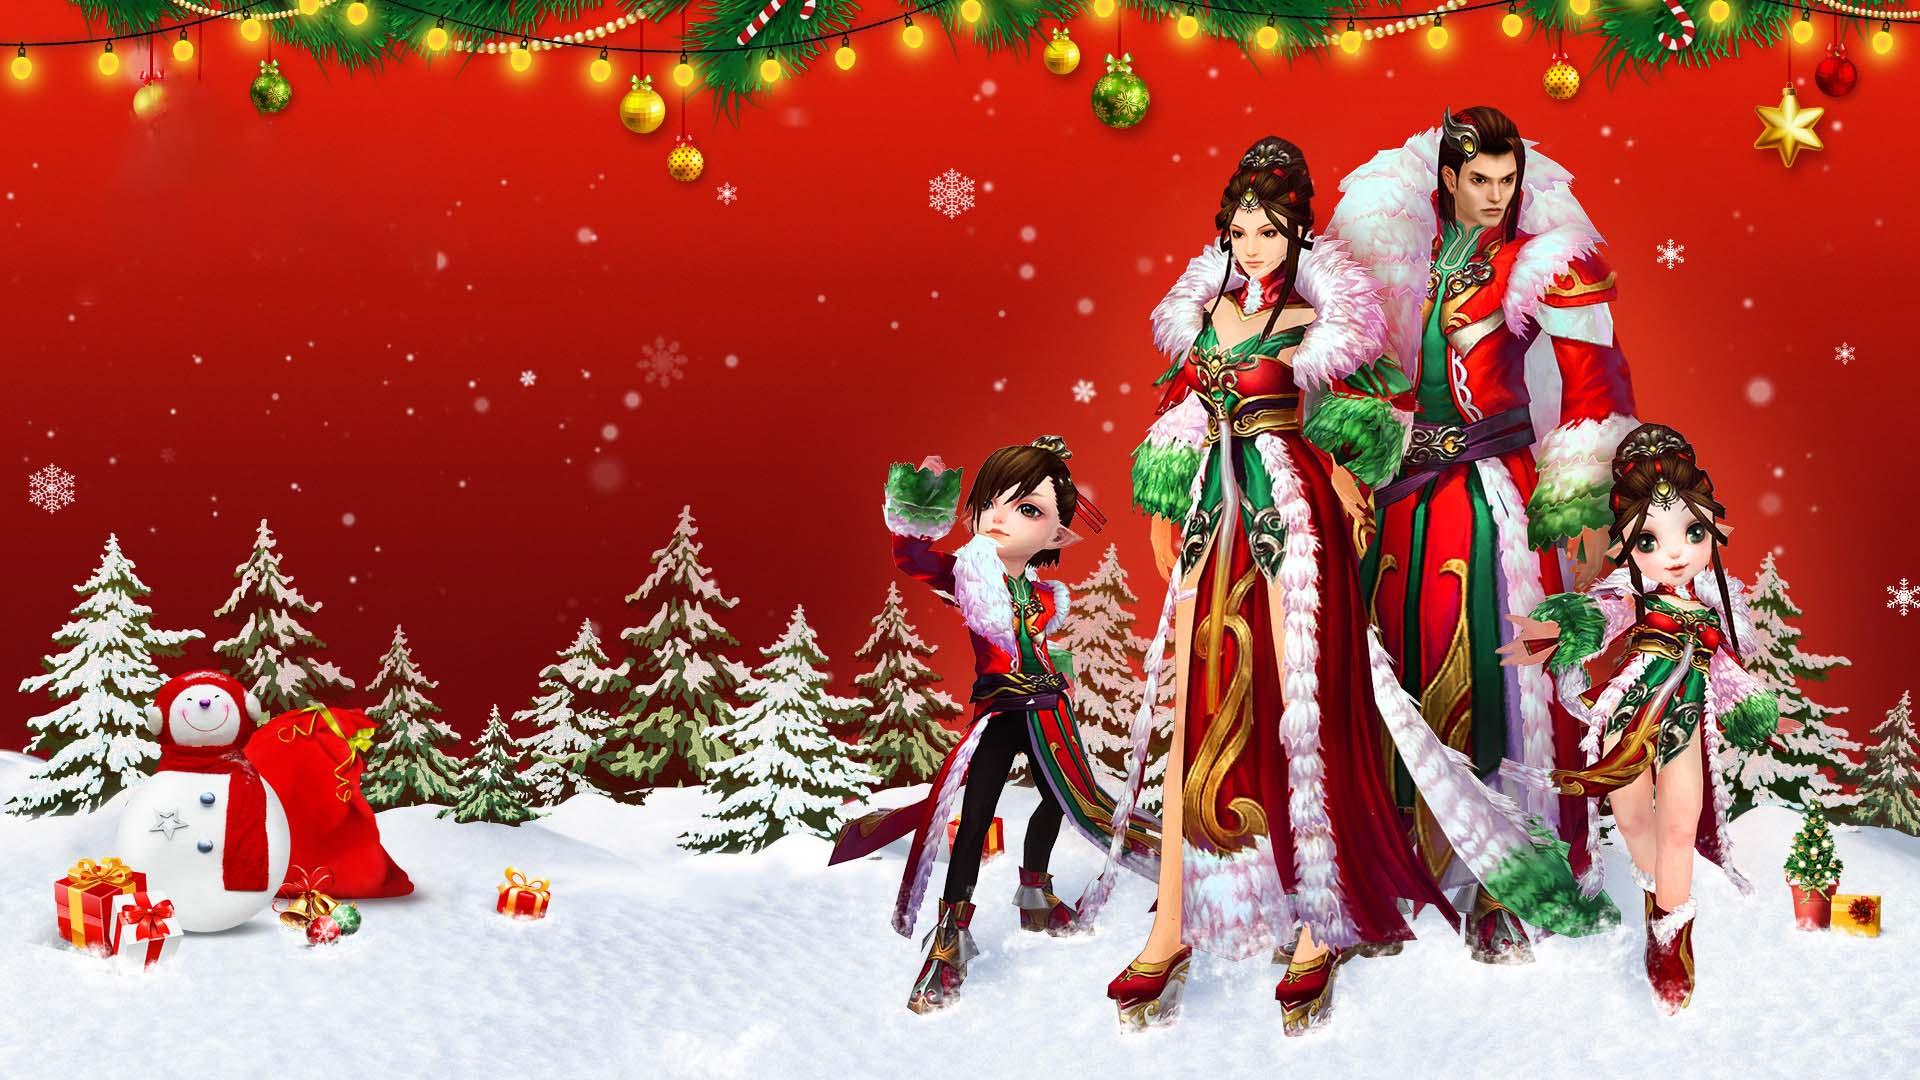 Cute wallpaper christmas 3d